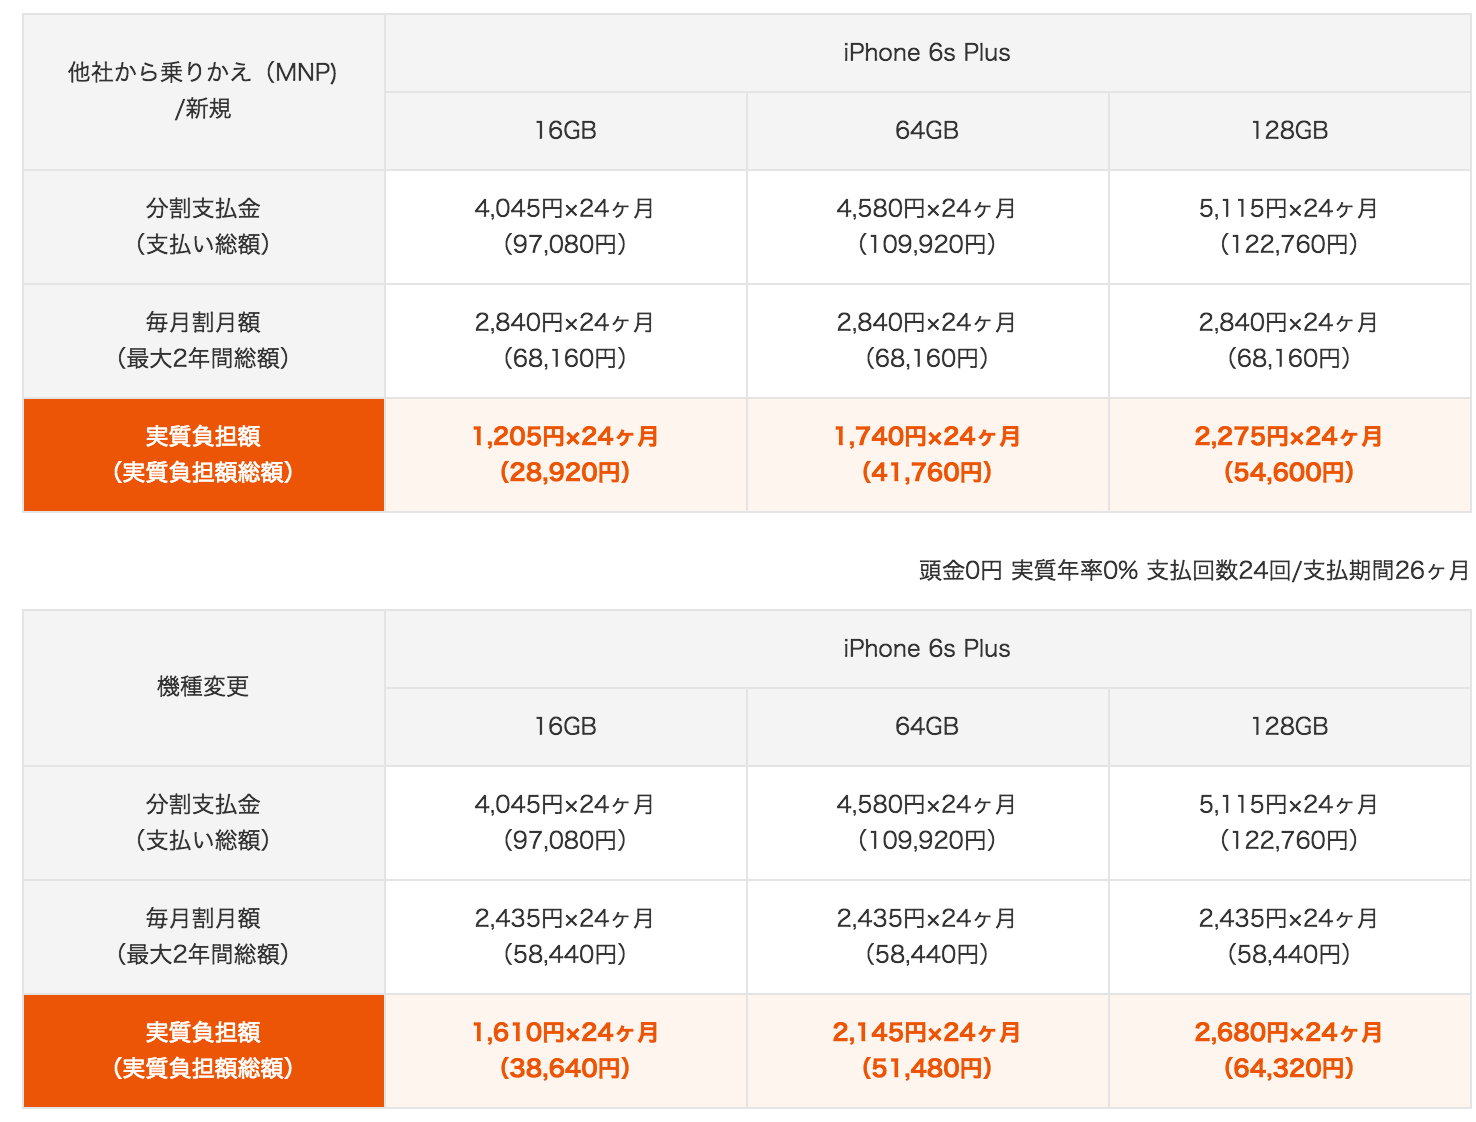 iPhone 6s Plusの料金